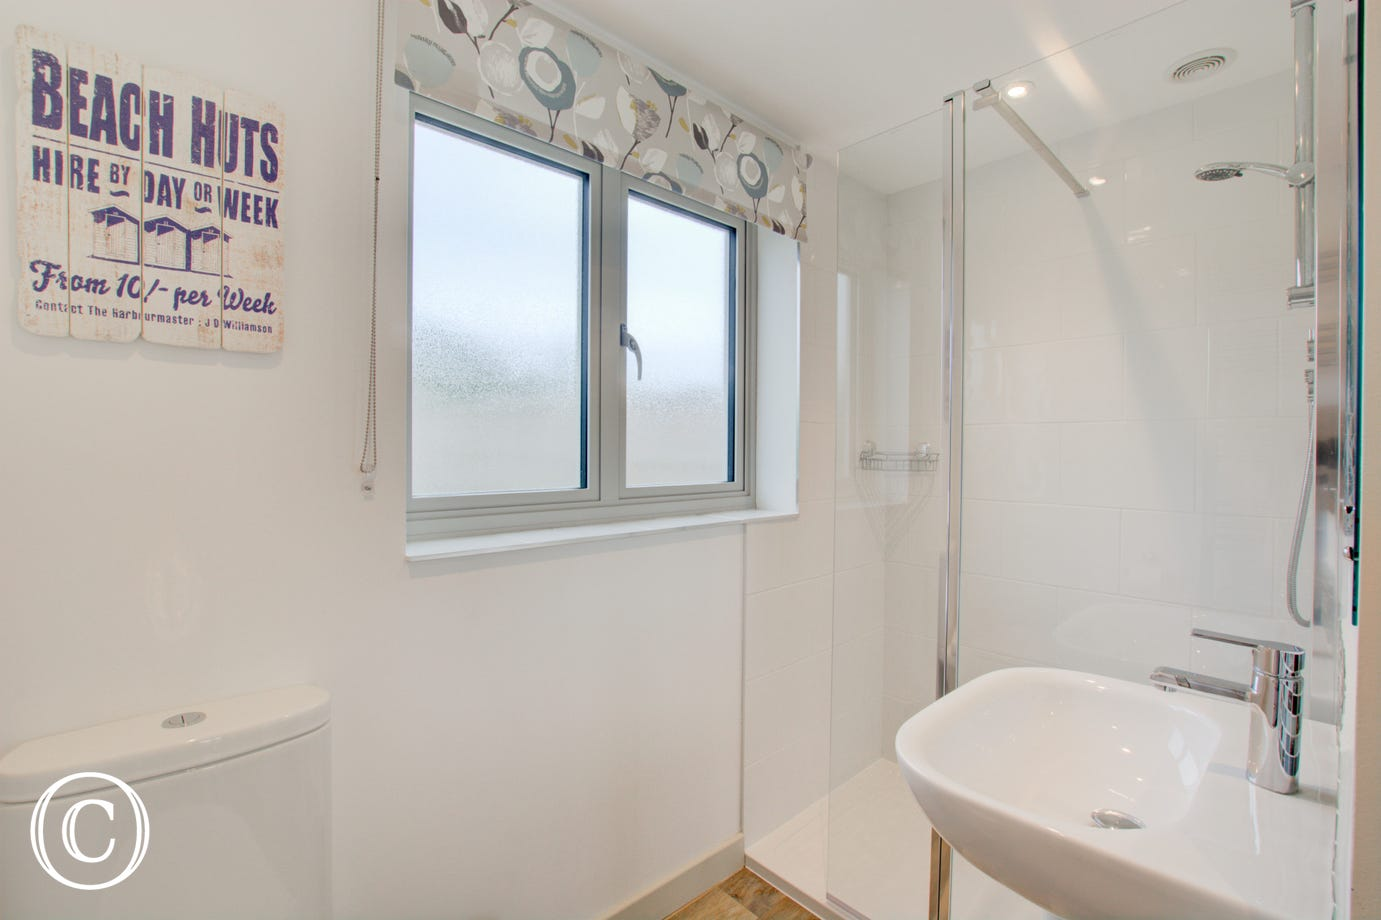 Shower room on the ground floor